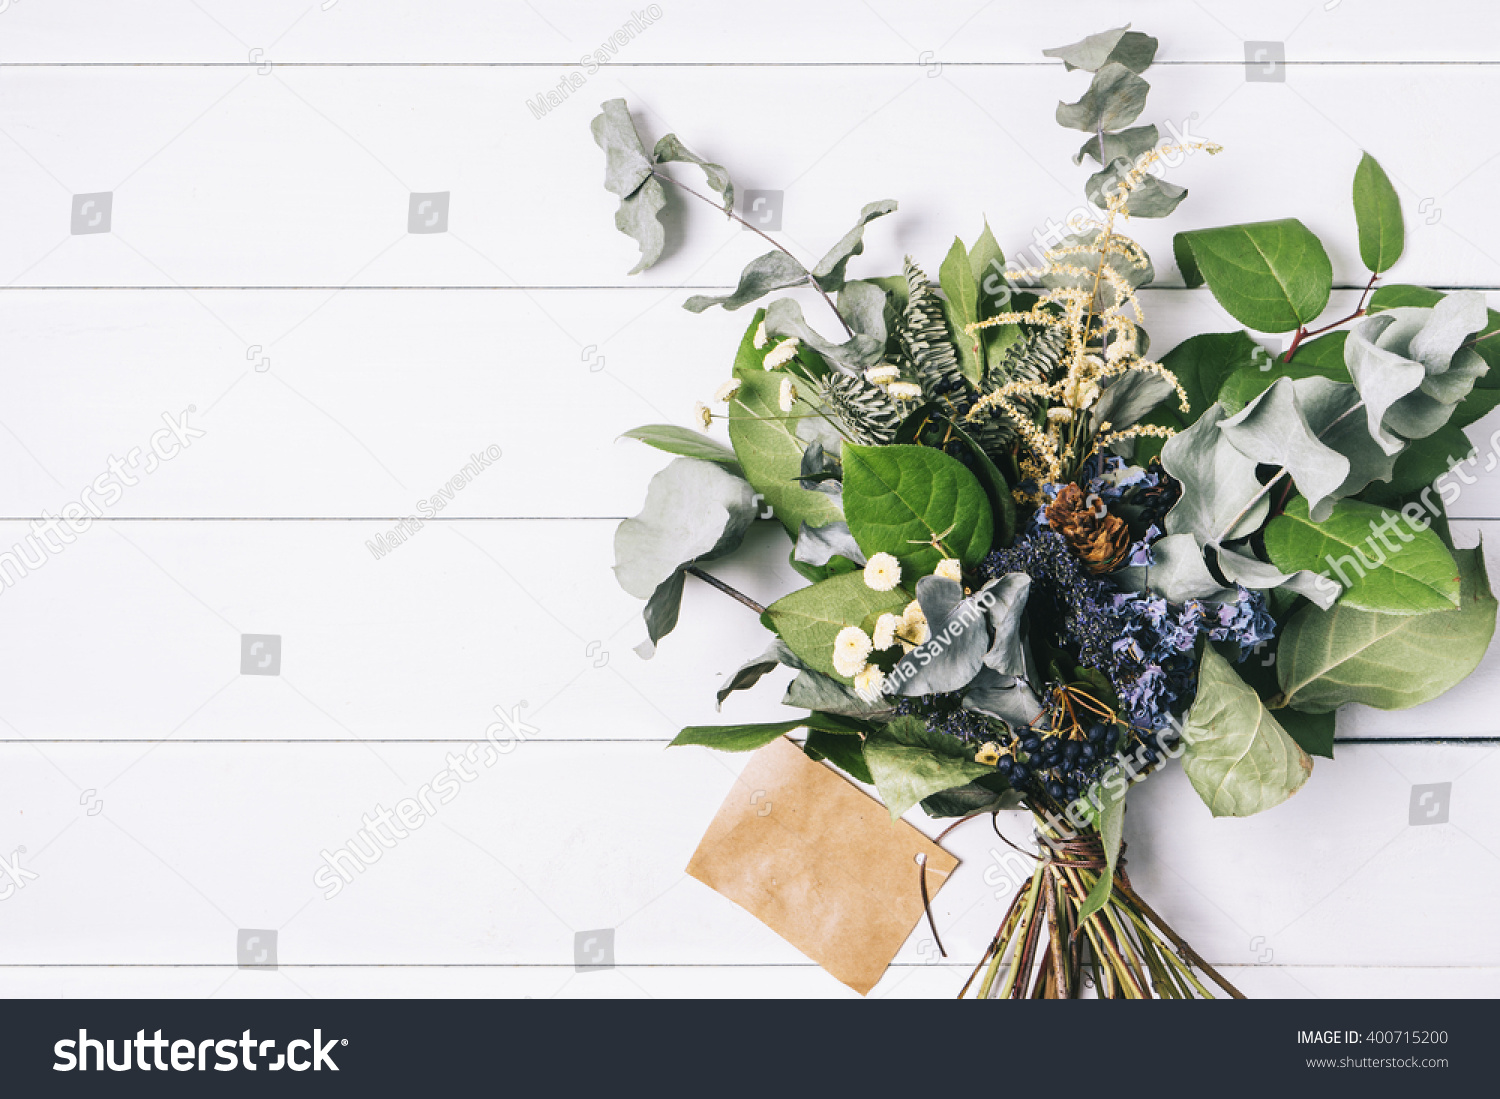 Old vintage white natural wood or wooden texture background or - Bouquet Of Dried Wild Flowers On White Table Background With Natural Wood Vintage Planks Wooden Texture